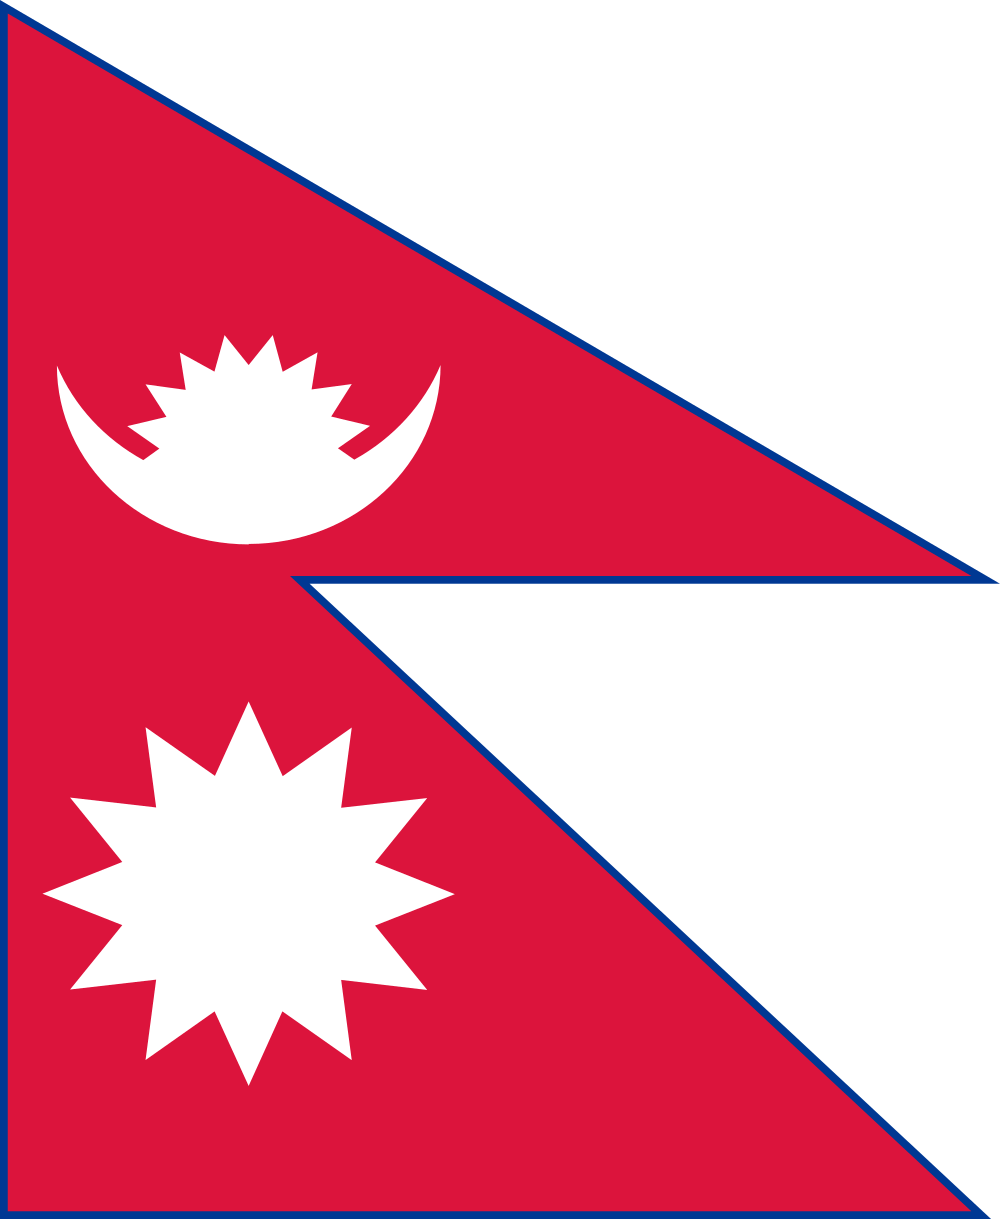 Nepal flag image preview